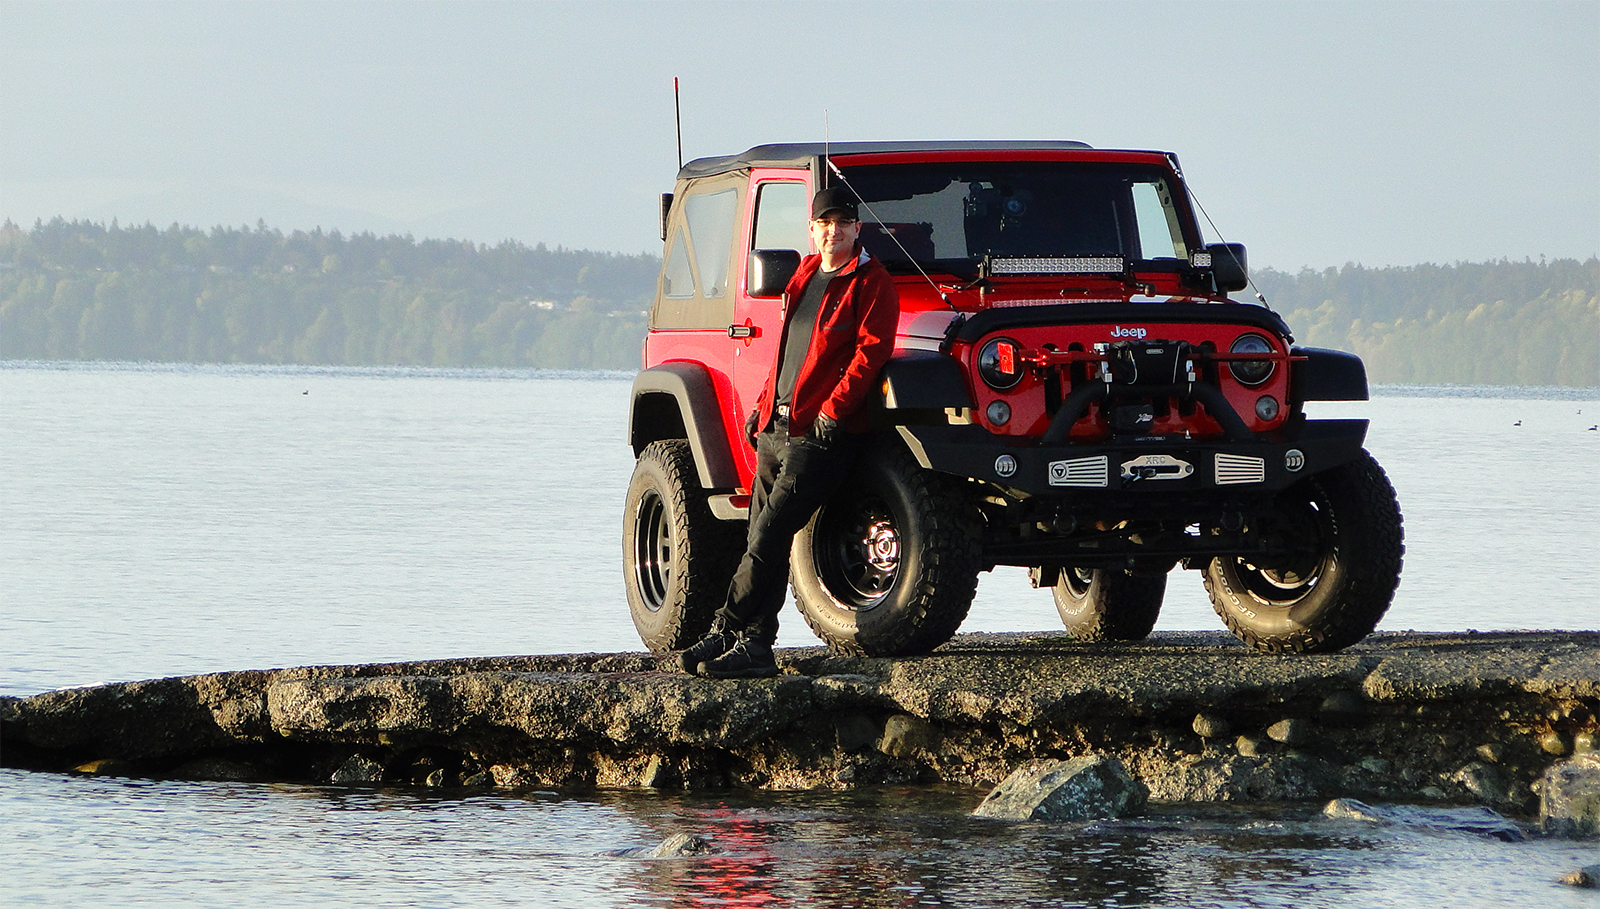 Jeep Wrangler Clothing Off Road Adventures